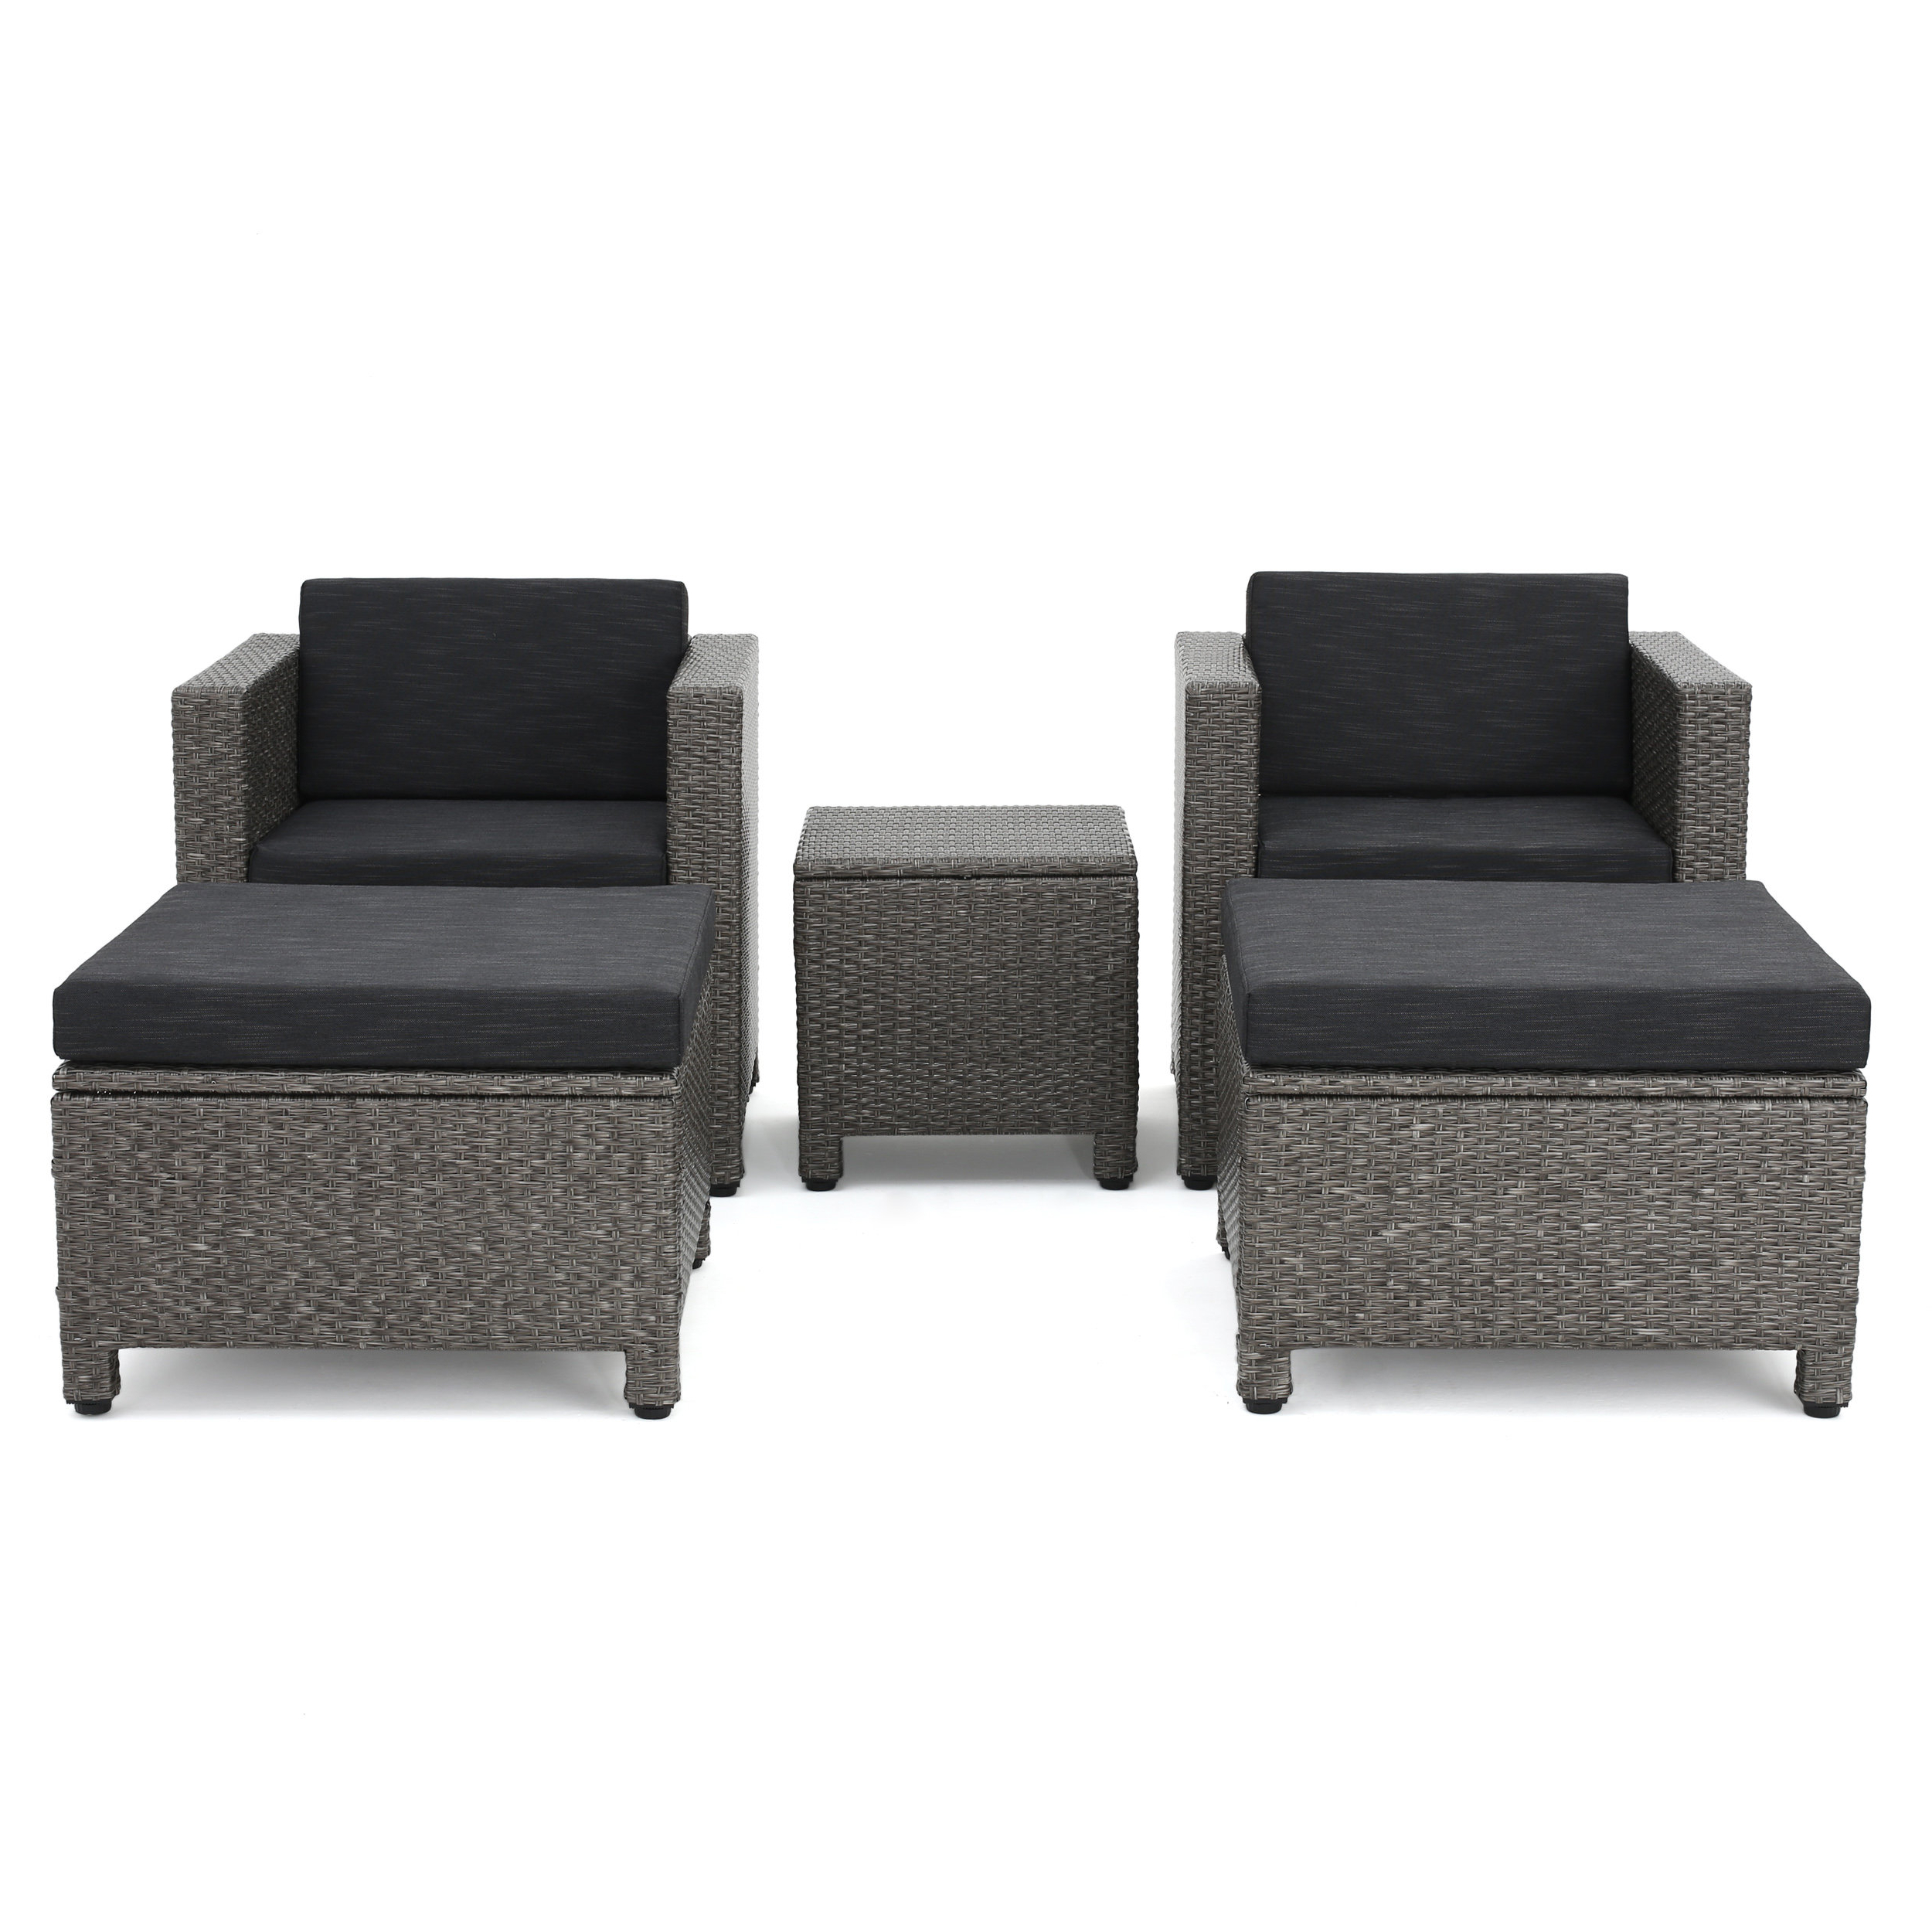 Furst Patio Sofas With Cushion Inside Well Known Furst 5 Piece Rattan Seating Group With Cushions (View 7 of 20)